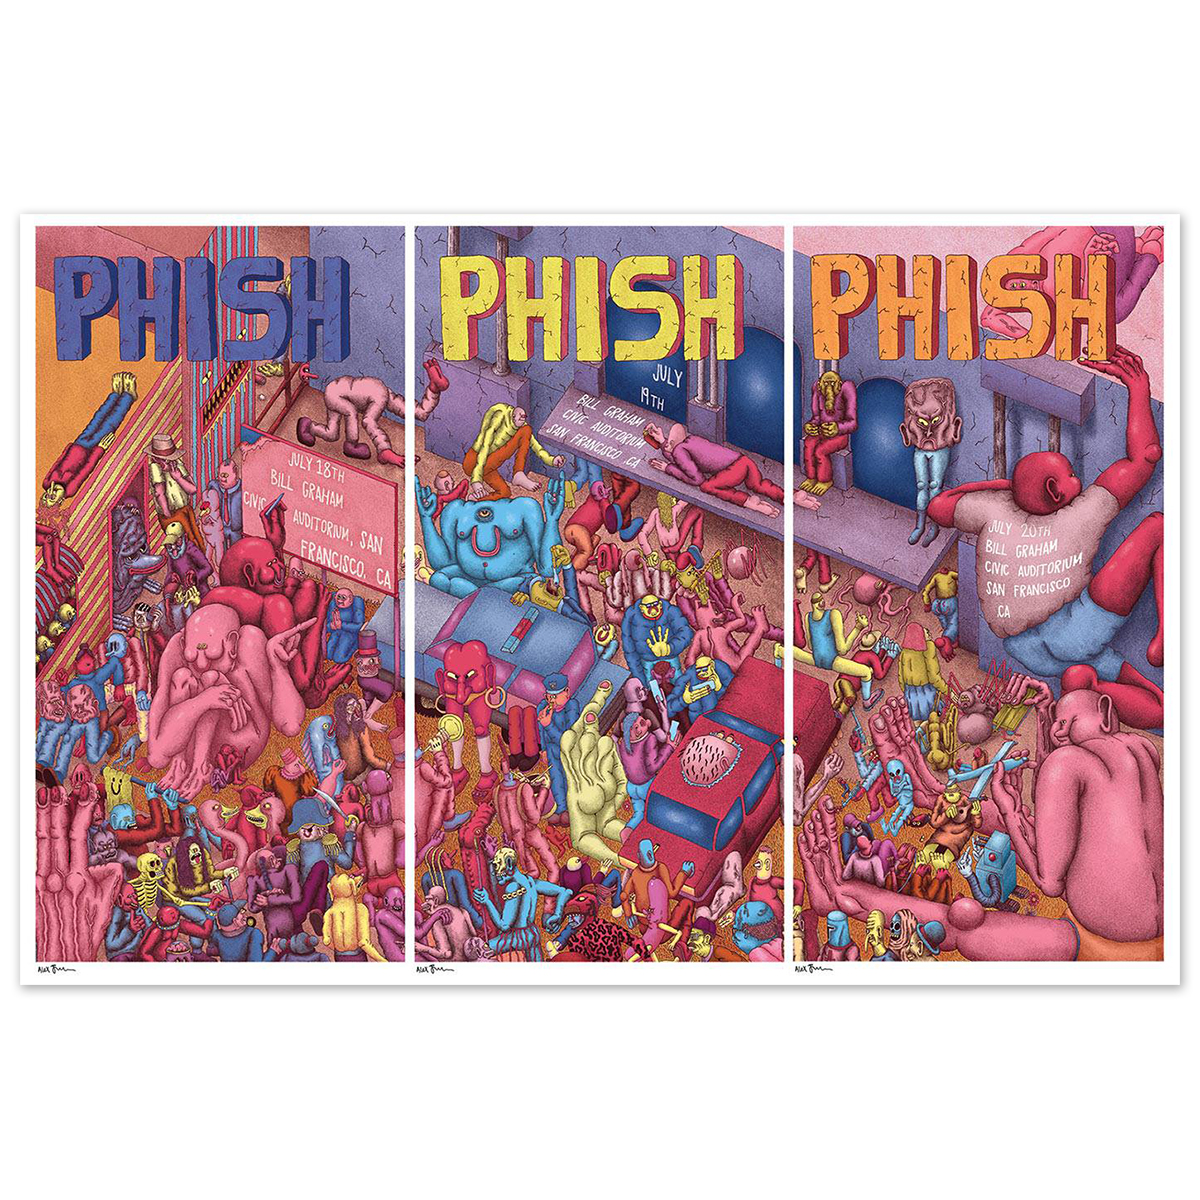 Limited Edition 7/18-20/2016 San Francisco, CA Posters